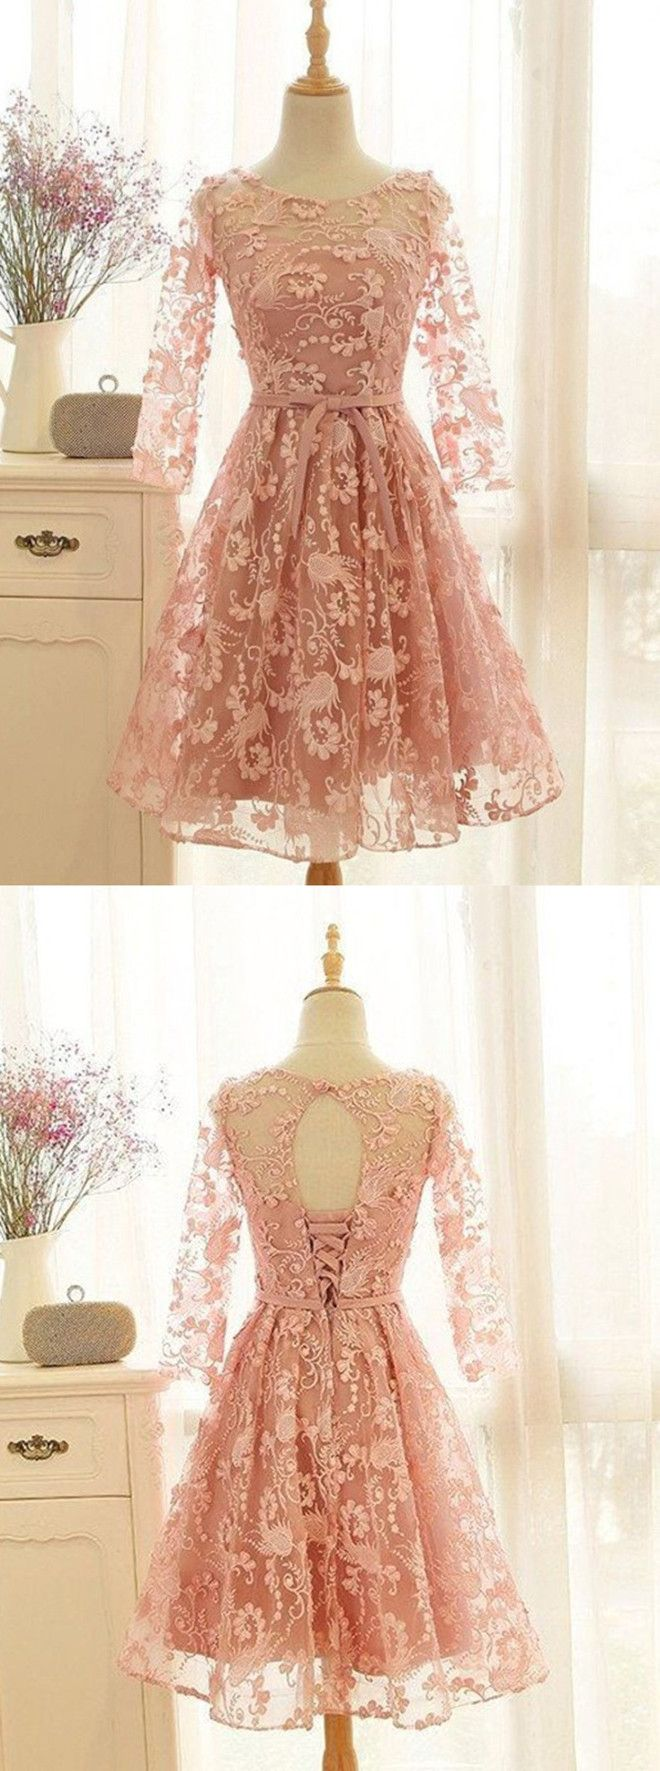 unique homecoming dresses,lace homecoming dresses,short homecoming dresses,short prom dresses @simpledress2480